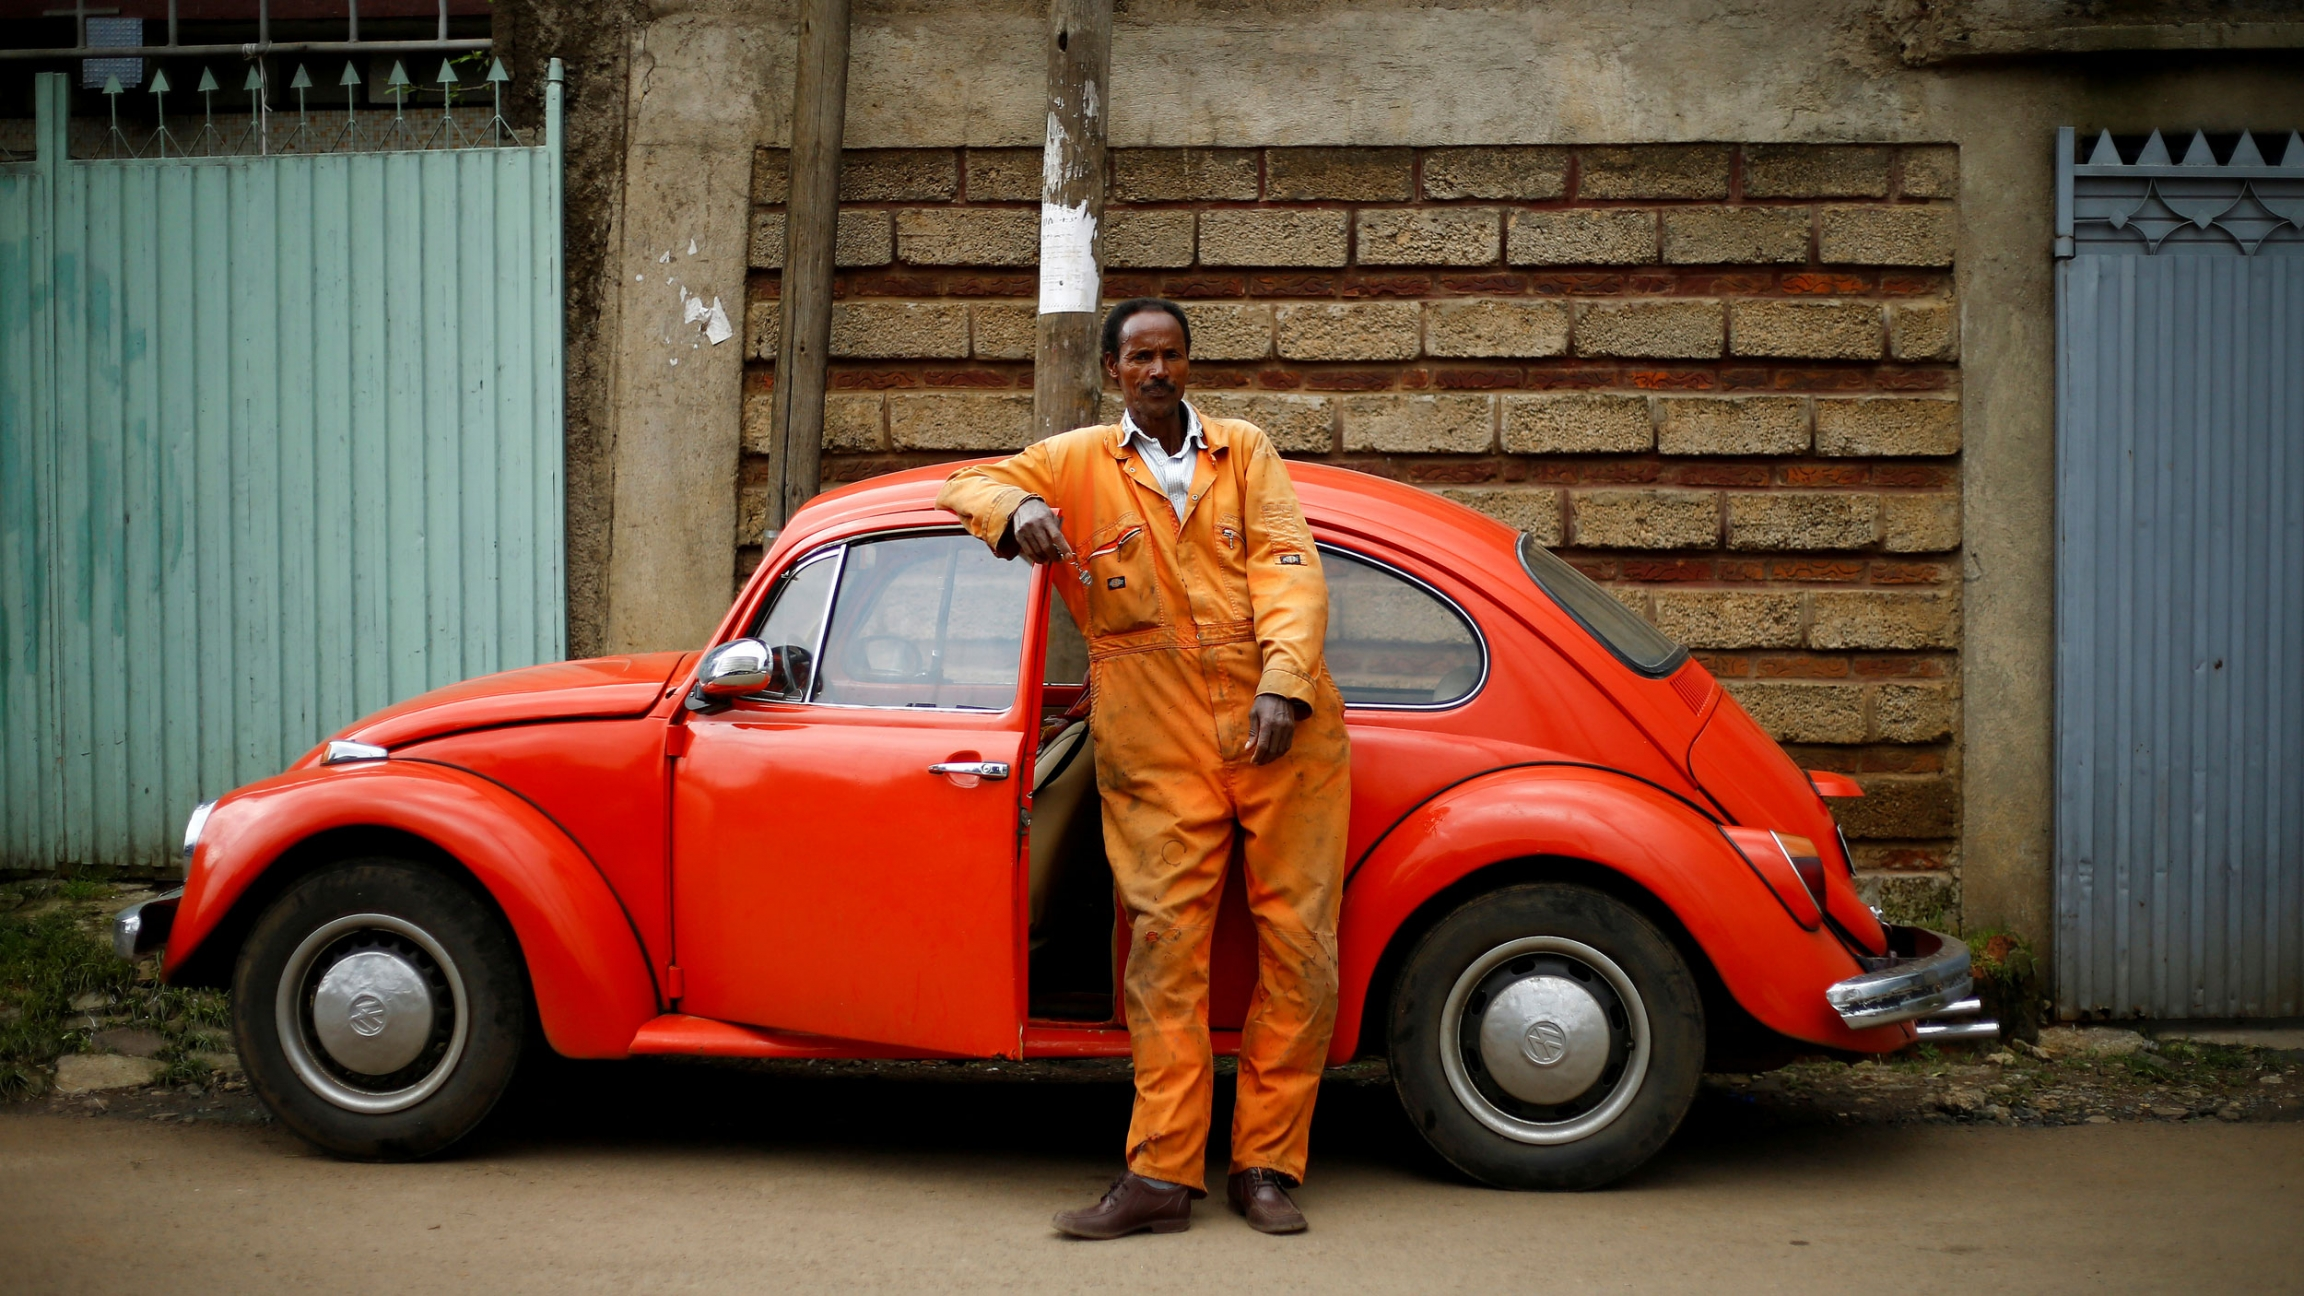 small resolution of a man in an orange jump suit leans his arm on a red 1965 model volkswagen